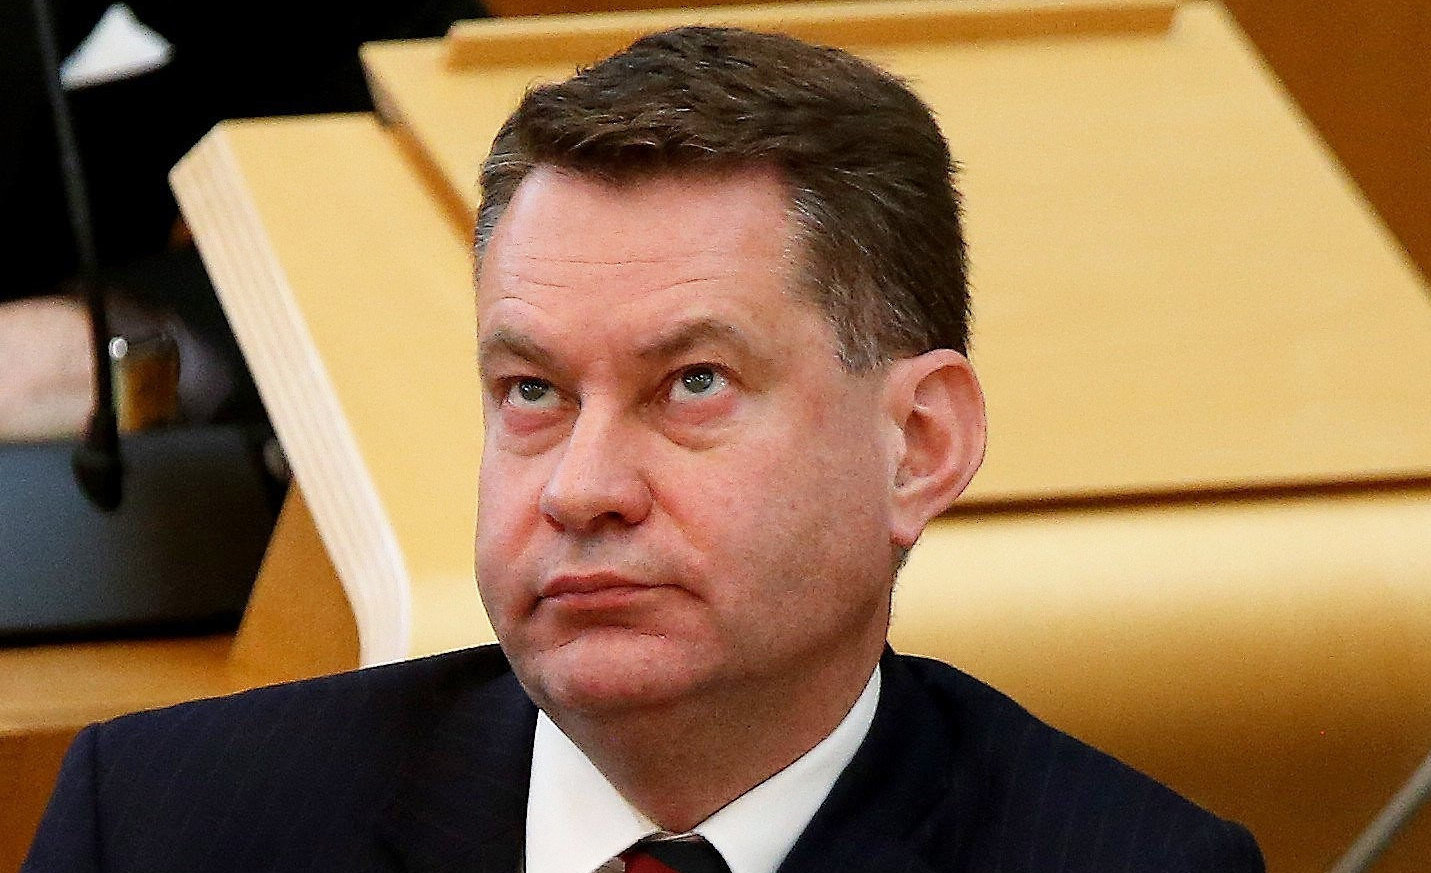 Fowk like Murdo Fraser arnae simply obnoxious, though there's an argiment for that. Photograph: Gordon Terris